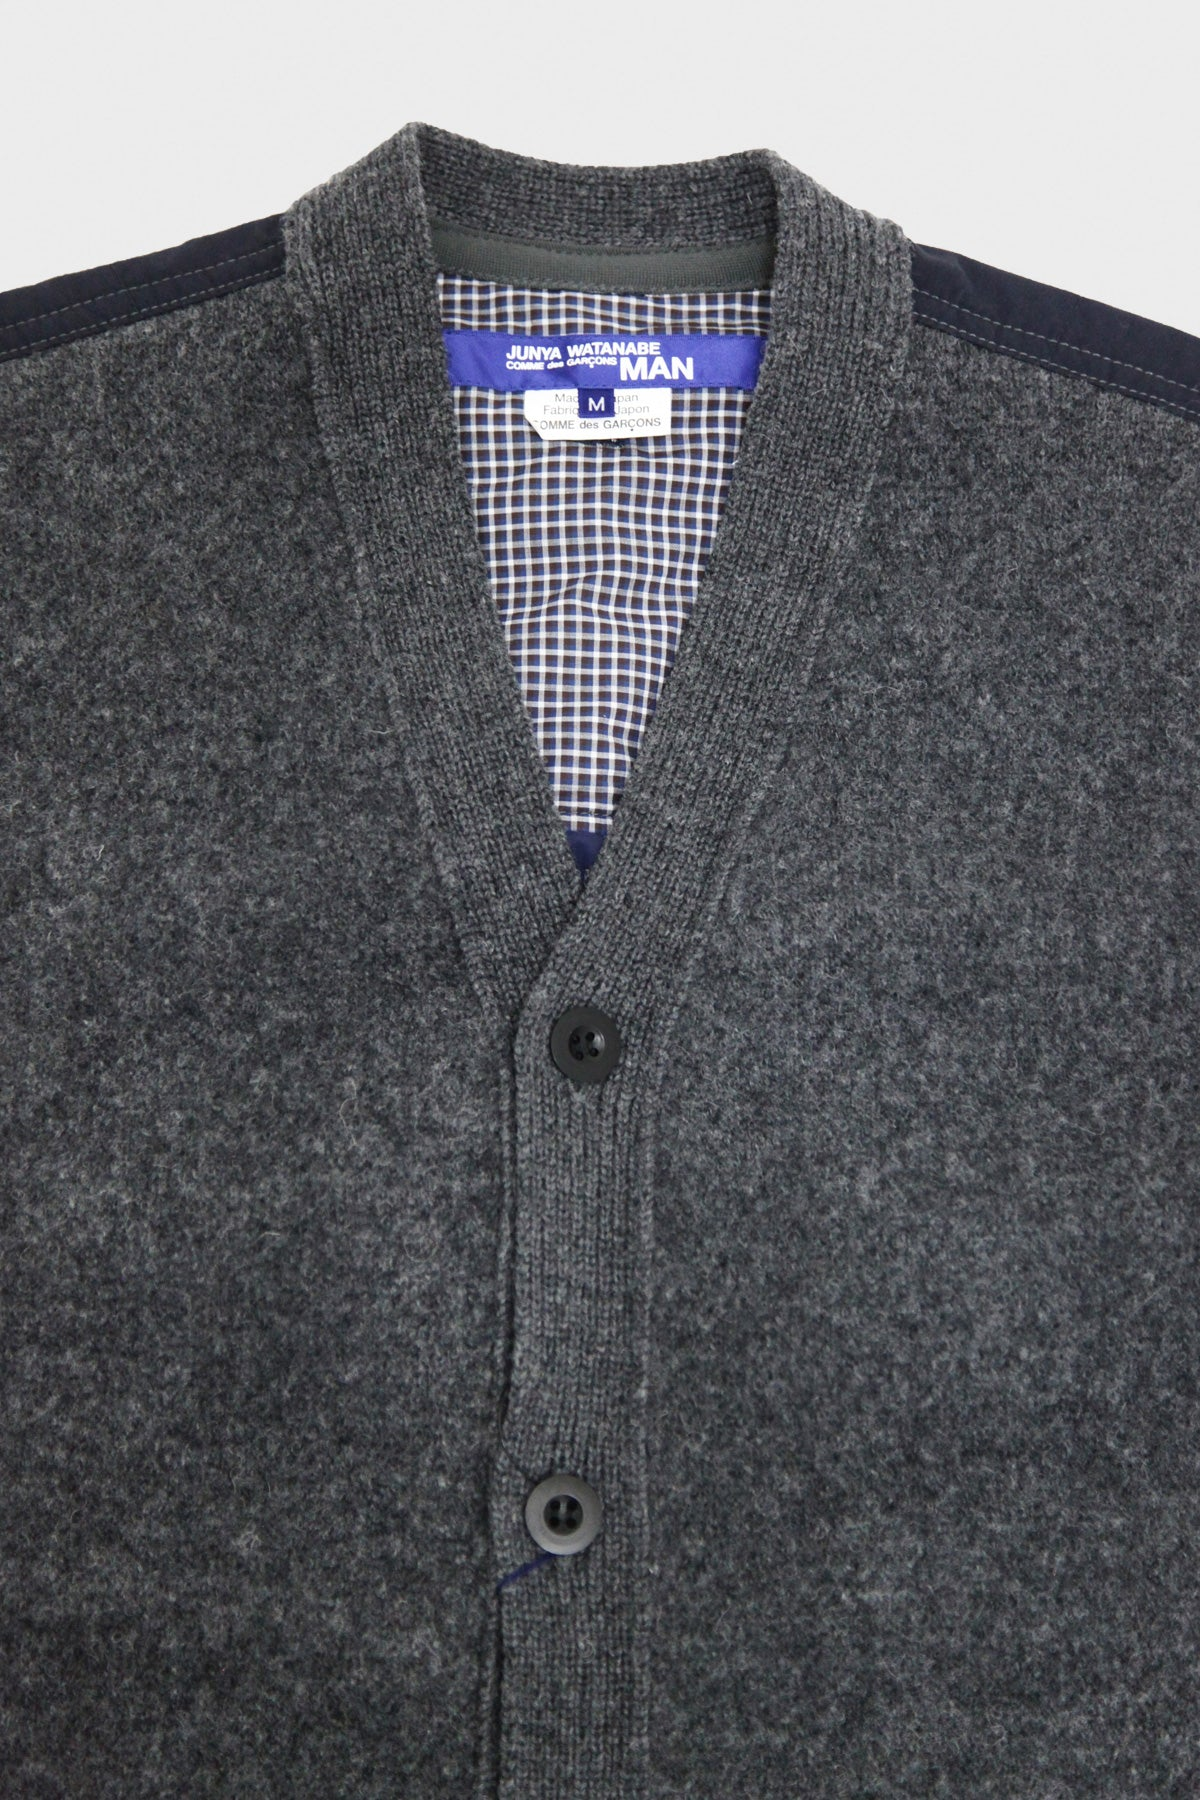 junya watanabe Cotton Weather Cardigan - Wool Tweed x Worsted Wool Jacquard - Gray/Navy